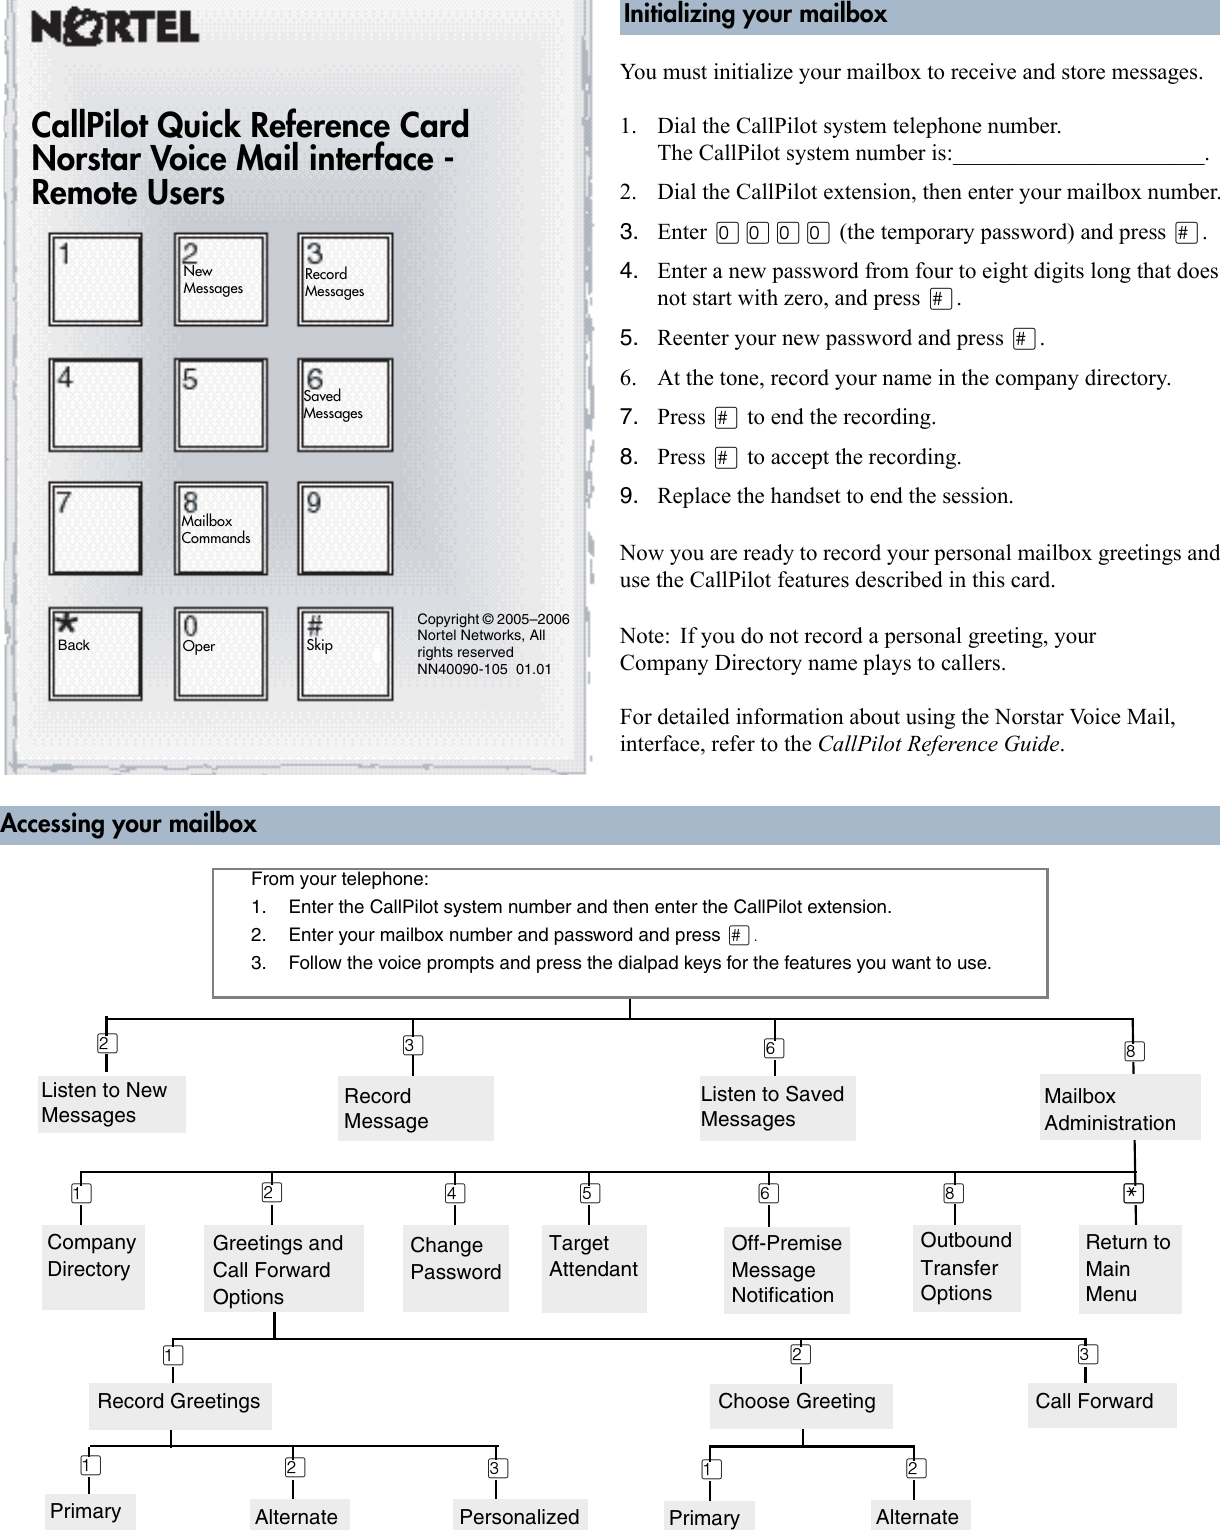 Avaya Callpilot Quick Reference Guide Card Norstar Voice